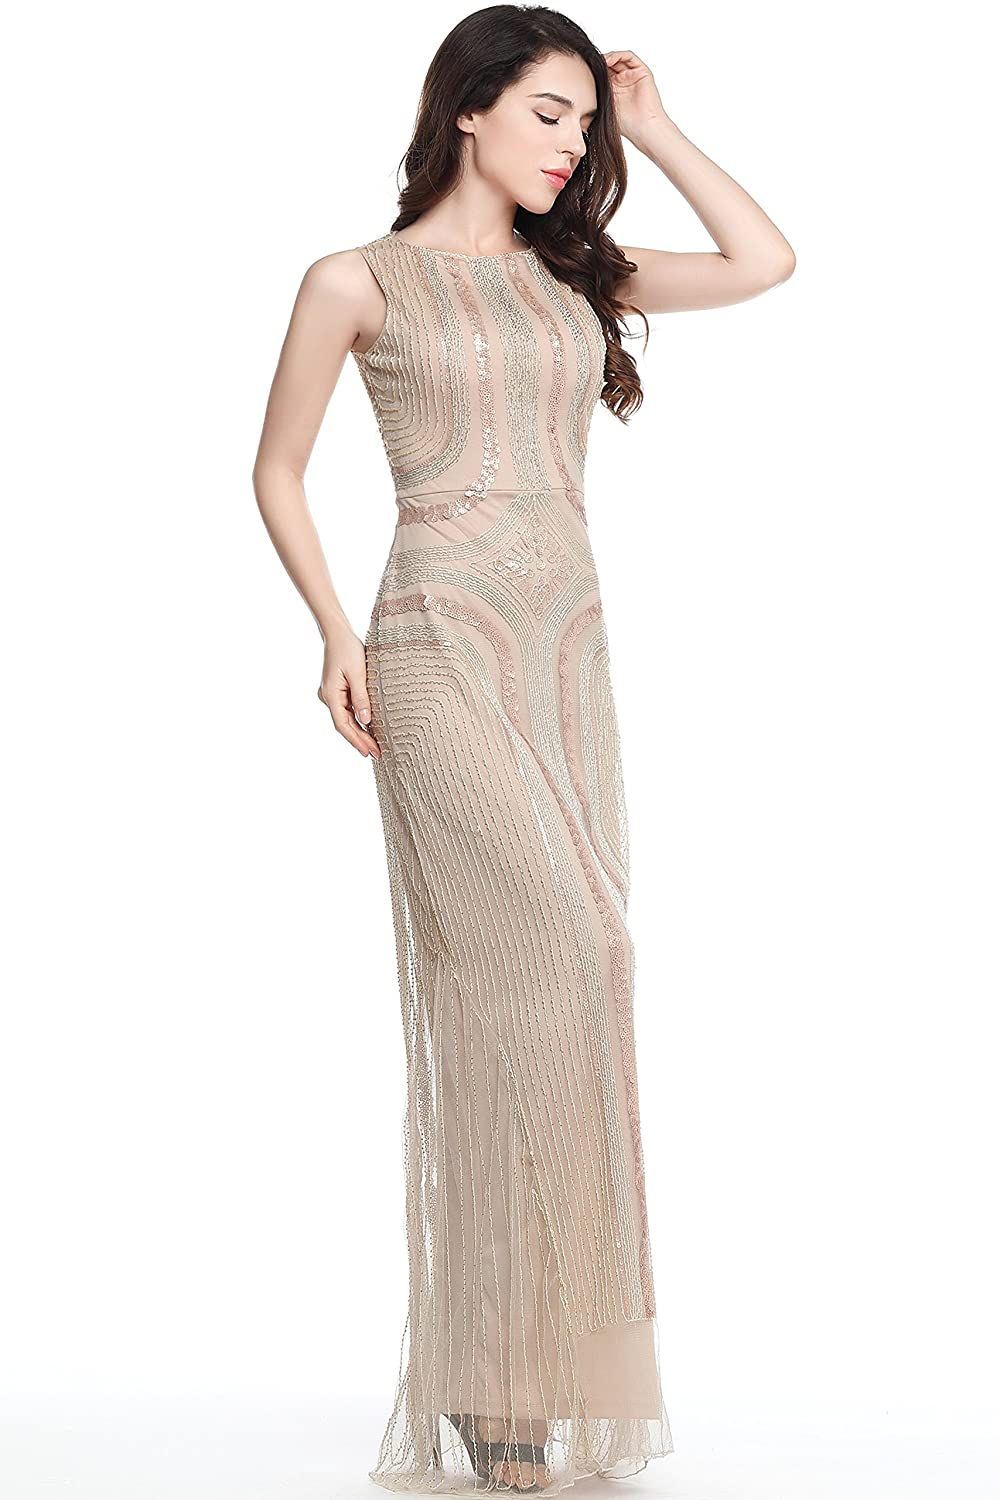 1930s Dresses | 30s Art Deco Dress BABEYOND 1920s Flapper Fancy Dress Roaring 20s Gatsby Dress Costume Vintage Sequin Beaded Long Evening Dress $39.99 AT vintagedancer.com